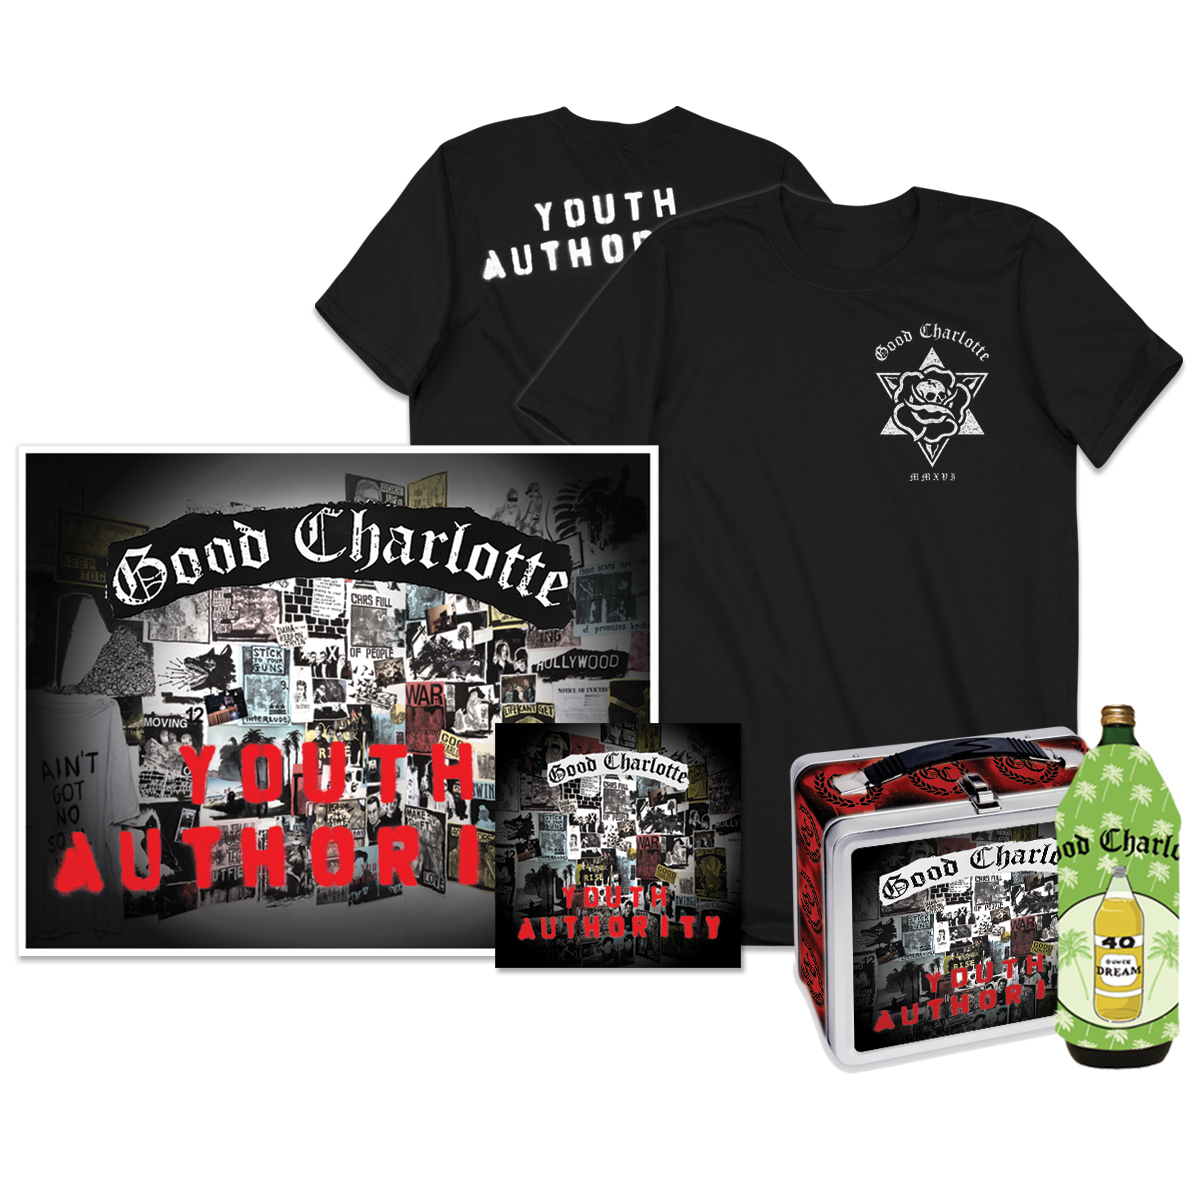 Youth Authority CD + Signed Litho + T-shirt + Koozie + Lunchbox